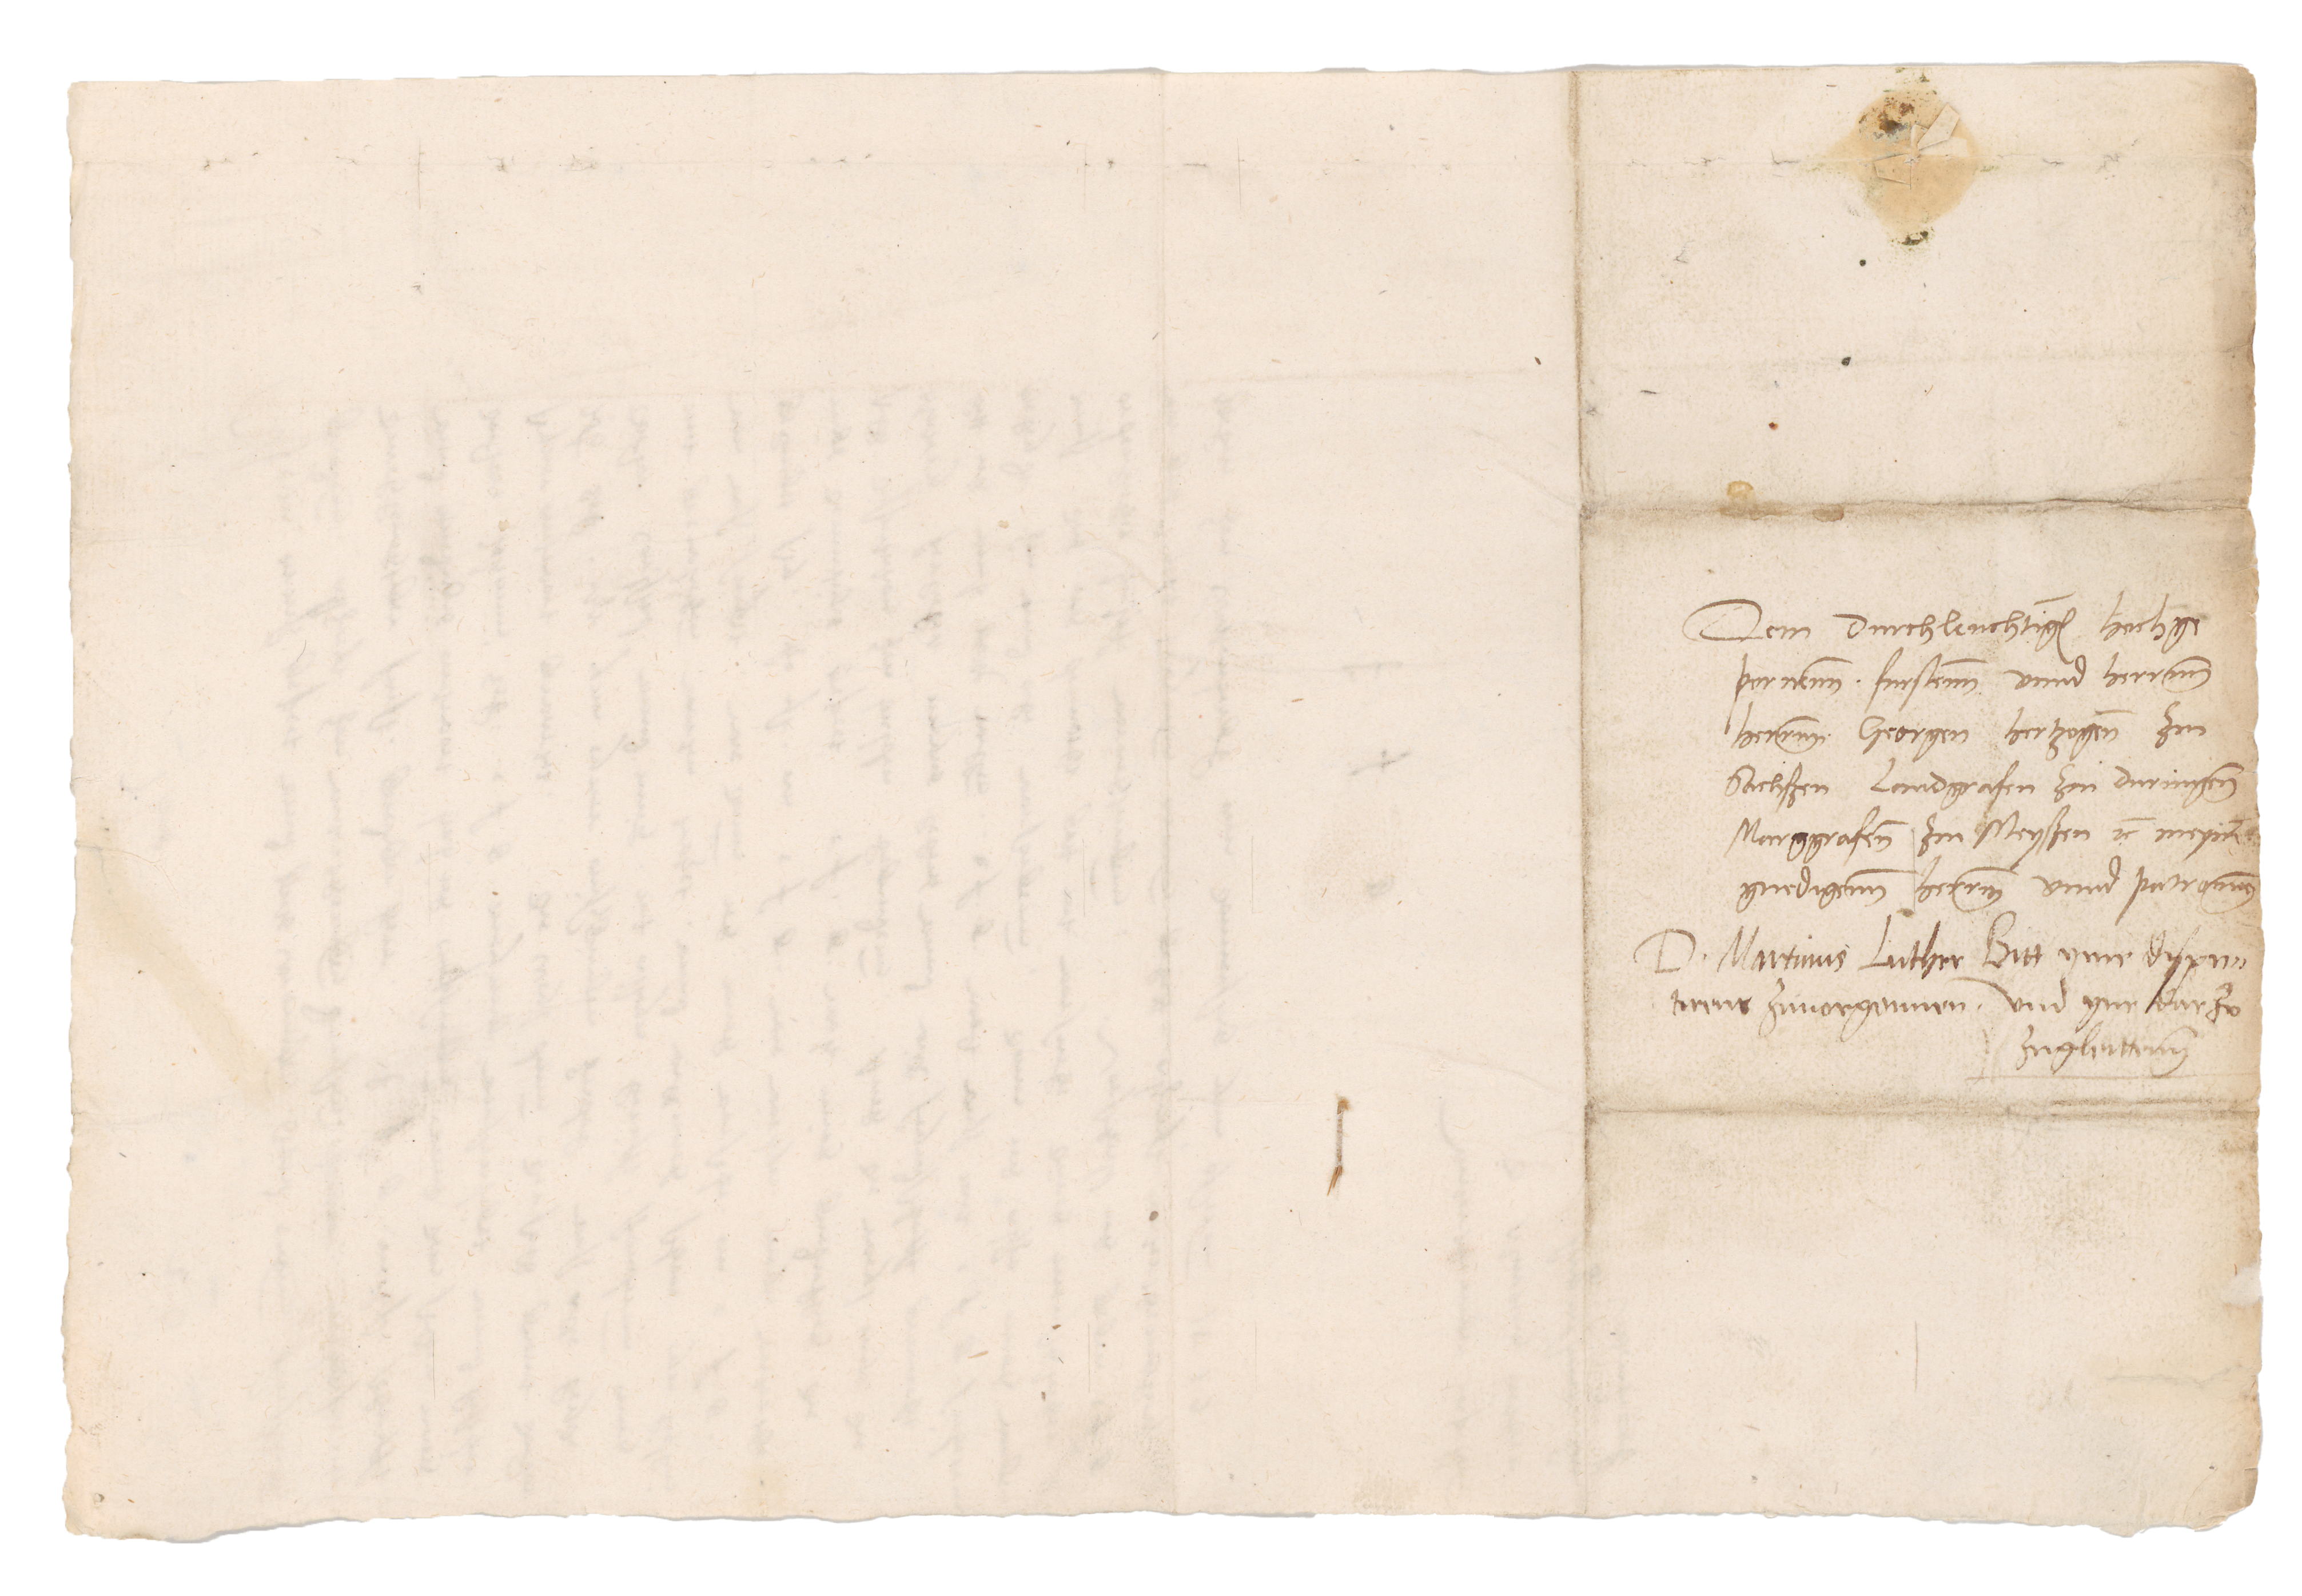 03-10024,Loc_10300-02,Bl_41verso.png